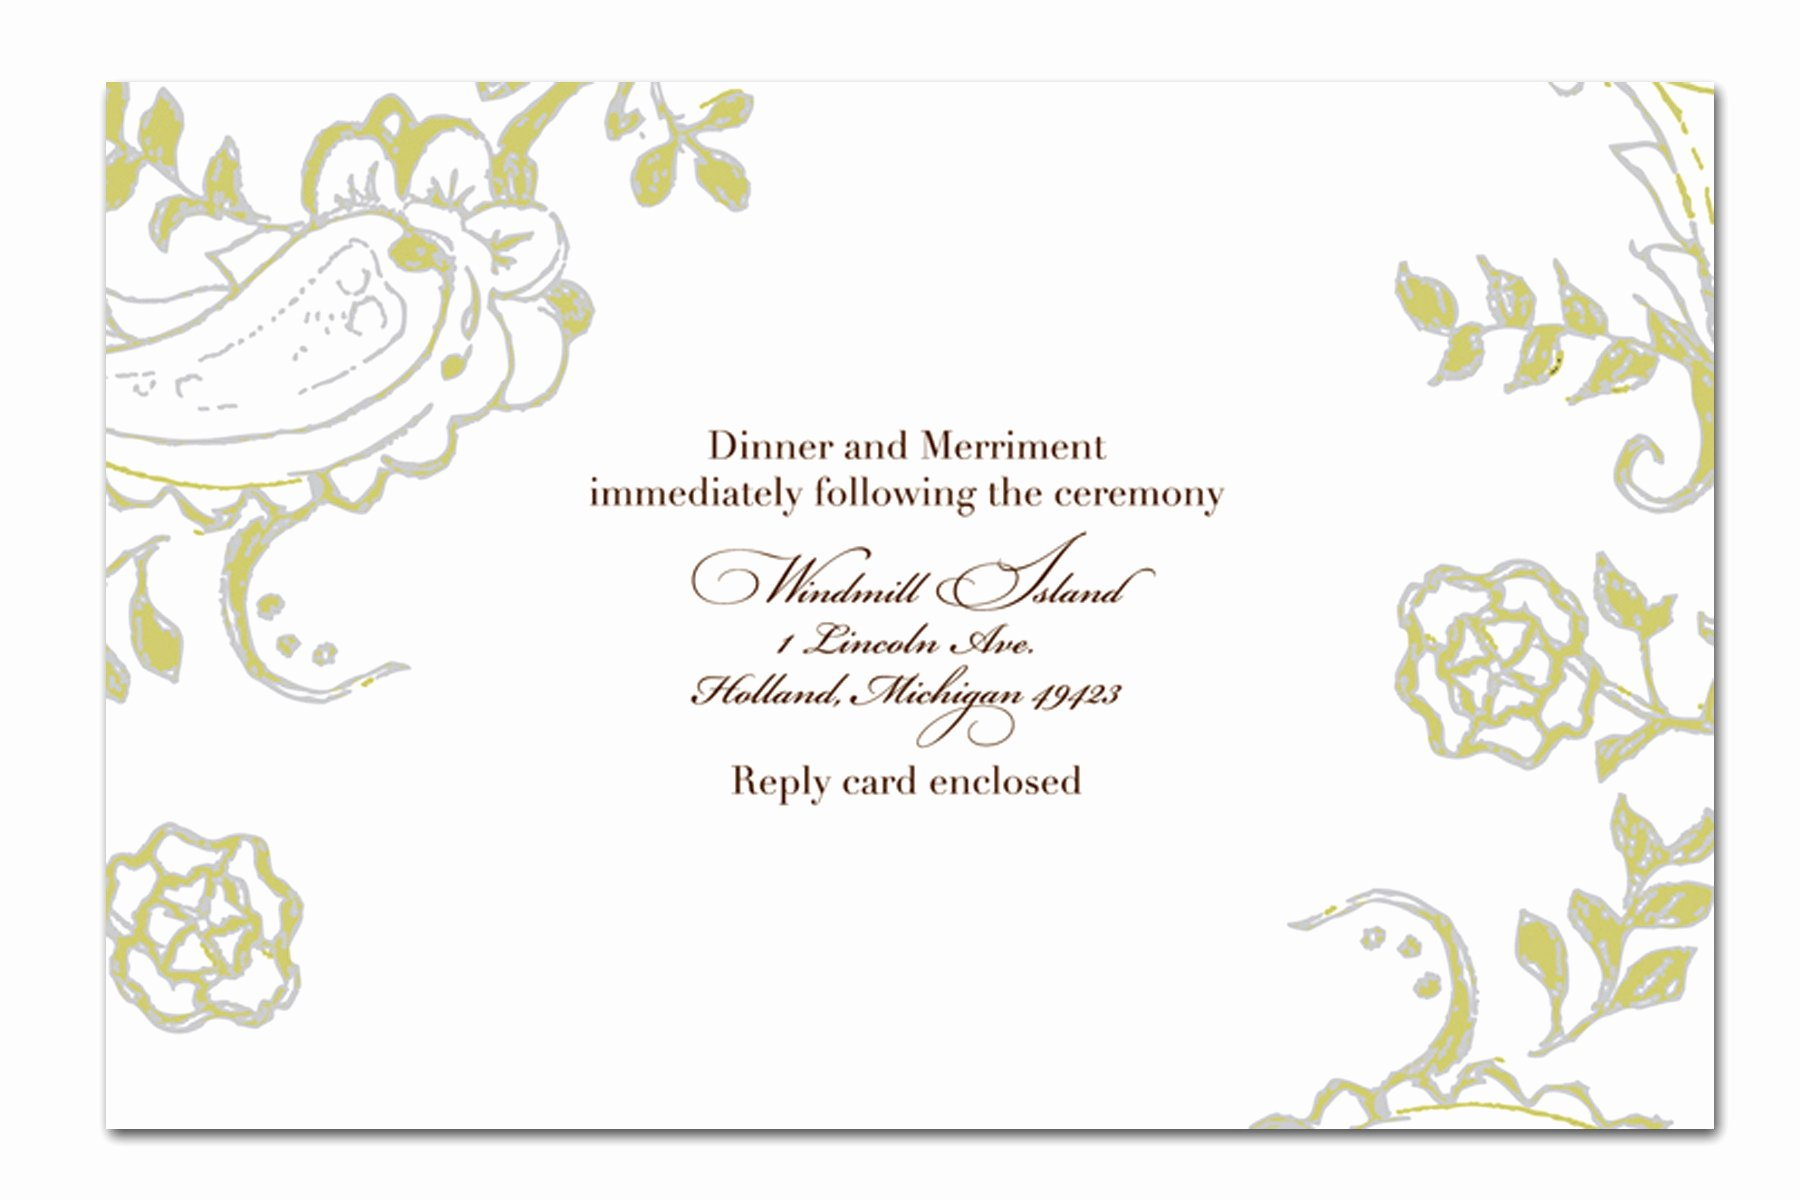 Wedding Invitation Template Photoshop Lovely Wedding Invitation Templates Psd Shop Free Creative